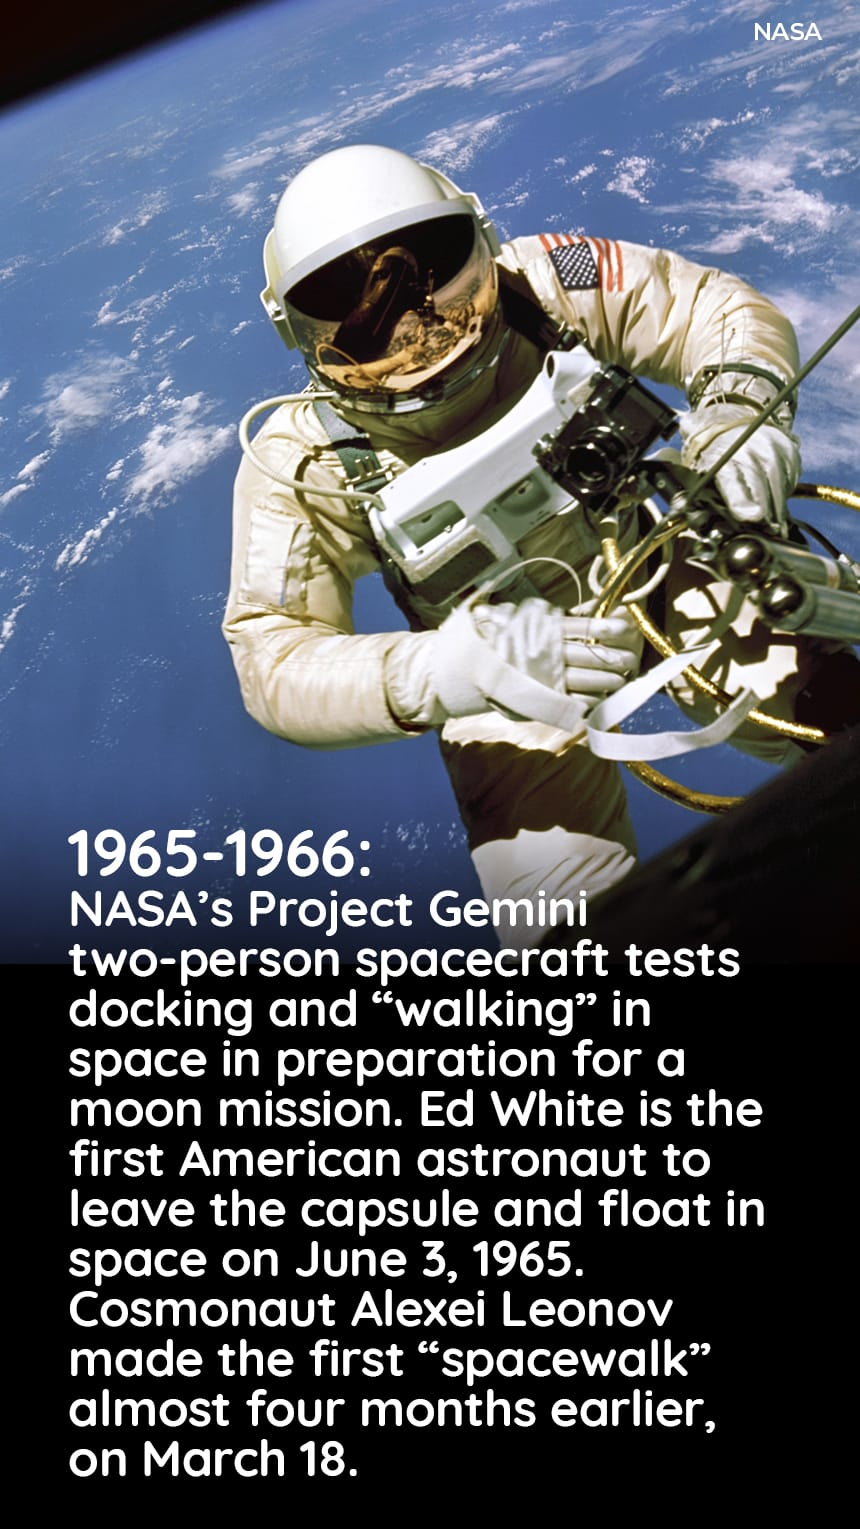 1965-1966: NASA's Project Gemini two person spacecraft tests docking and walking in space in preparation for a moon mission. Ed White is the first American astronaut to leave the capsule and float in space on June 3, 1965. Cosmonaut Alexei Leonov made the spacewalk almost four months earlier on March 18.